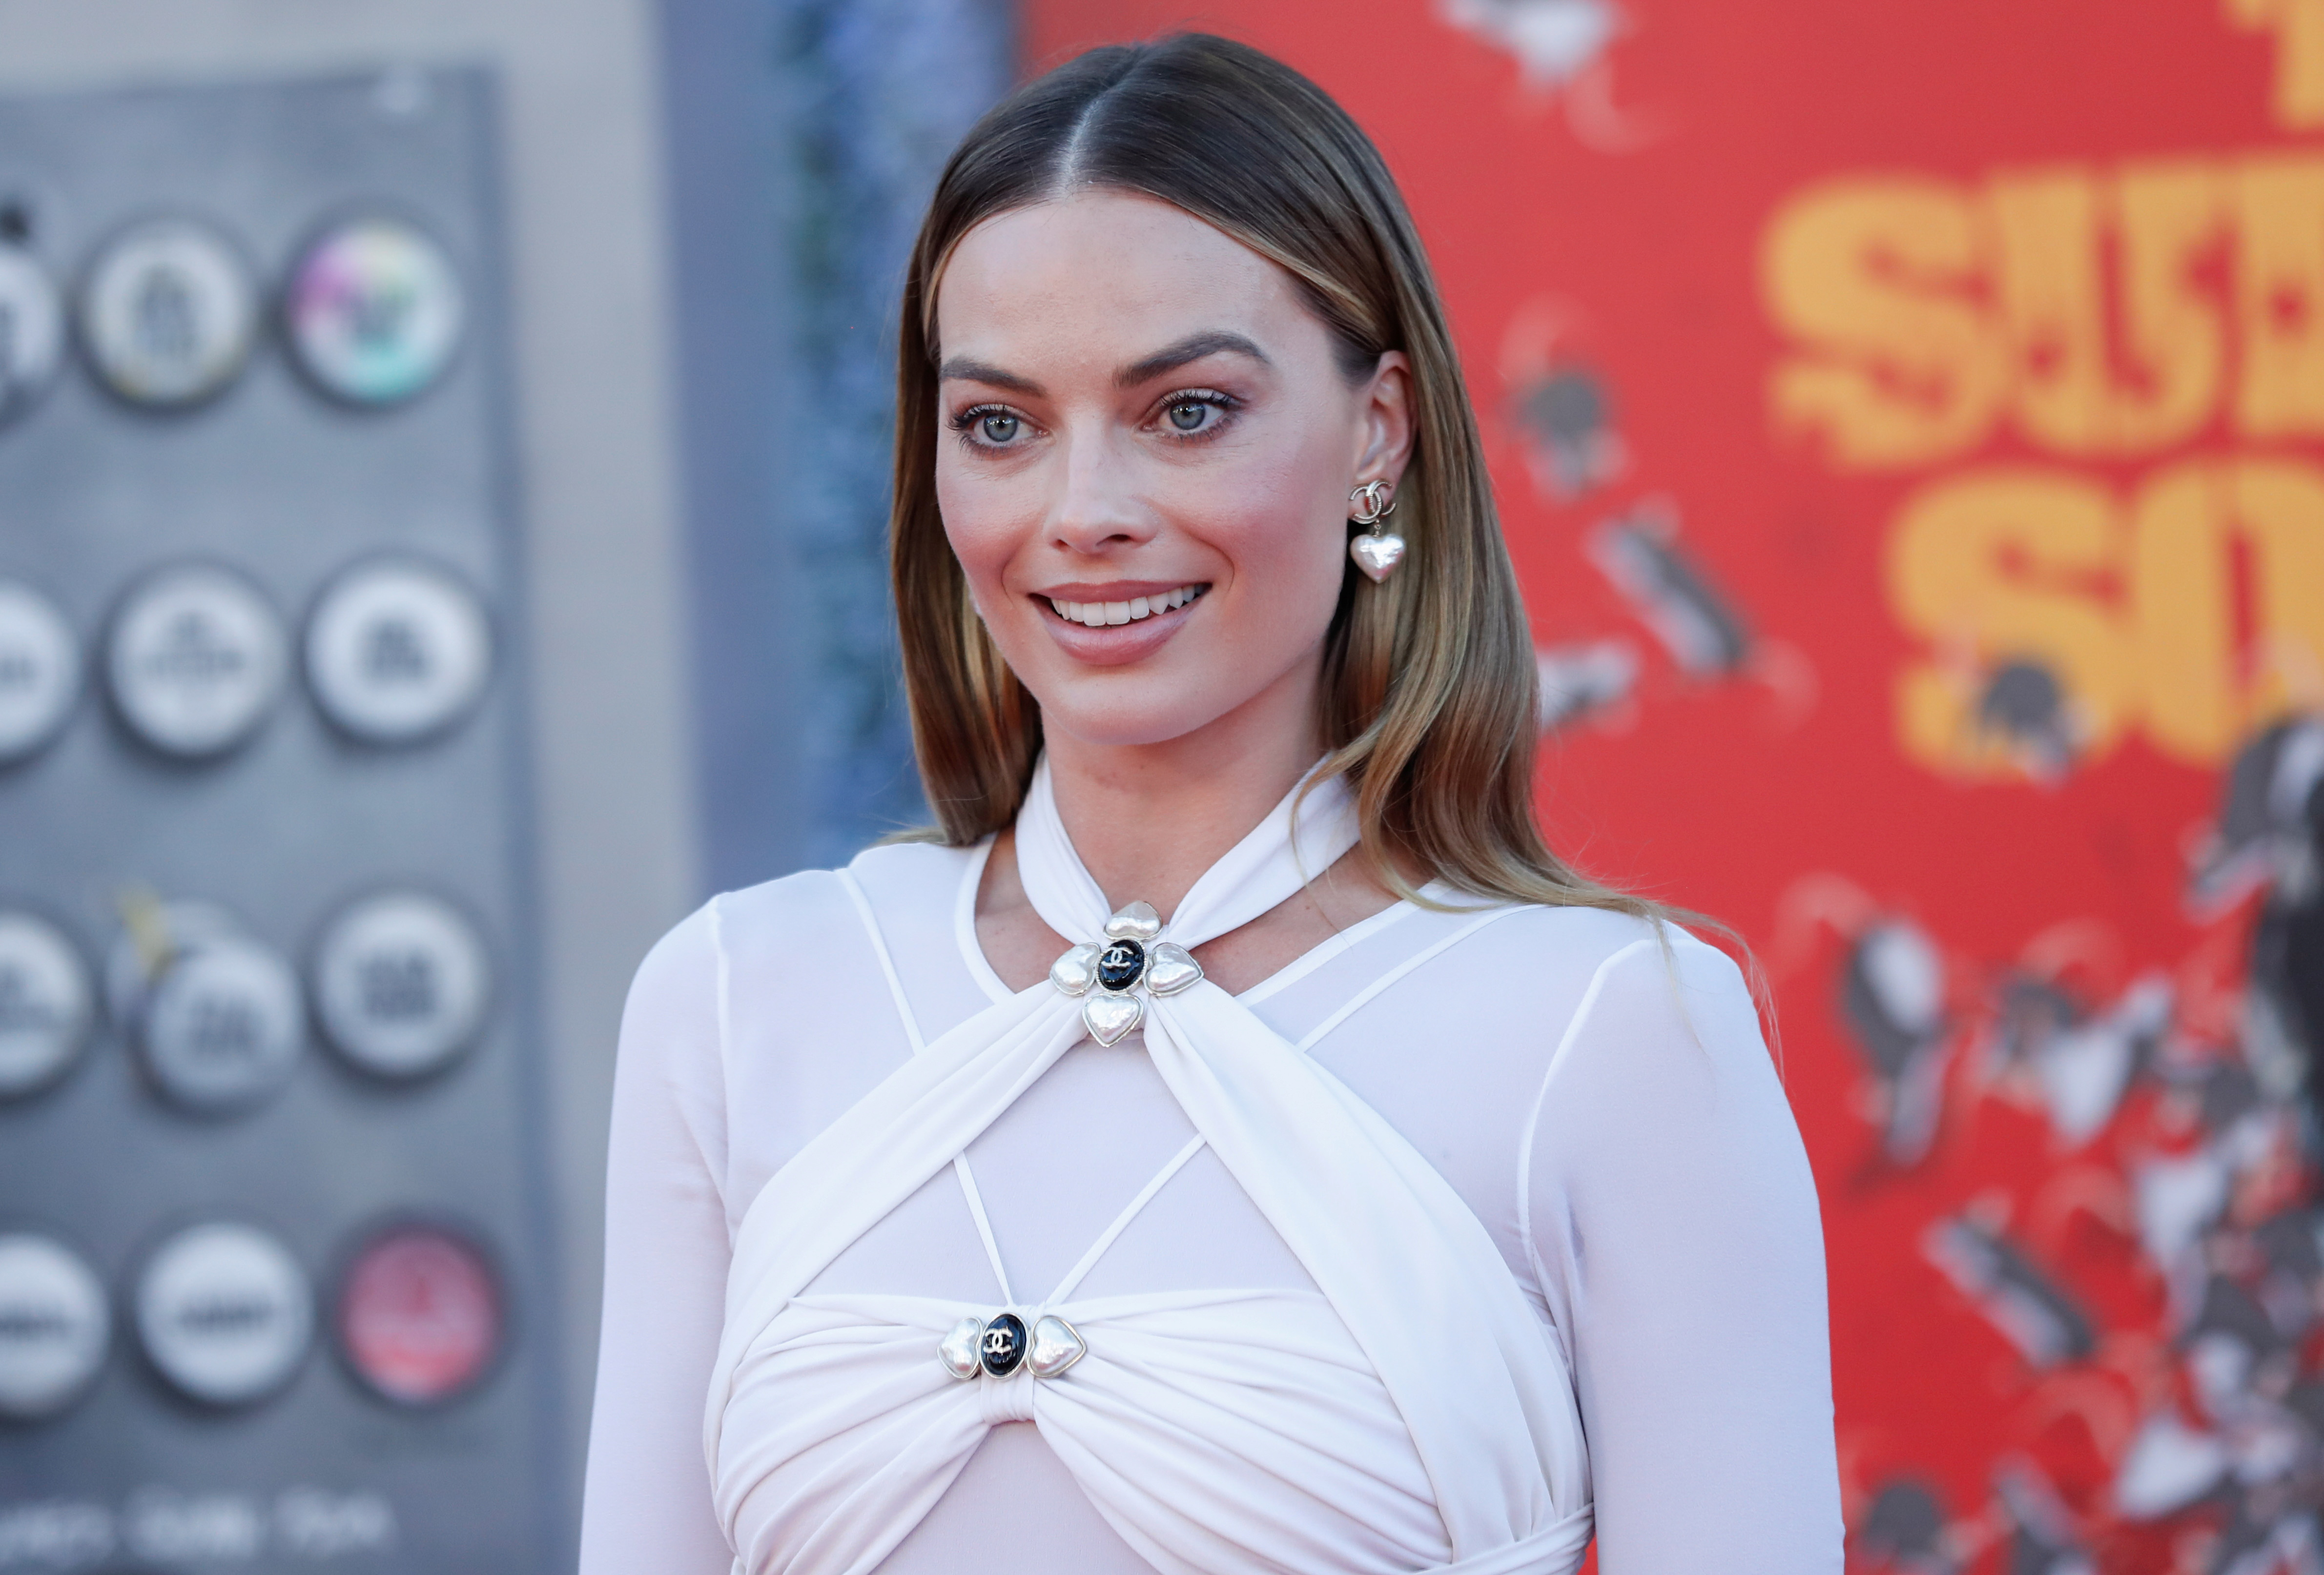 Cast member Margot Robbie poses at the premiere for the film